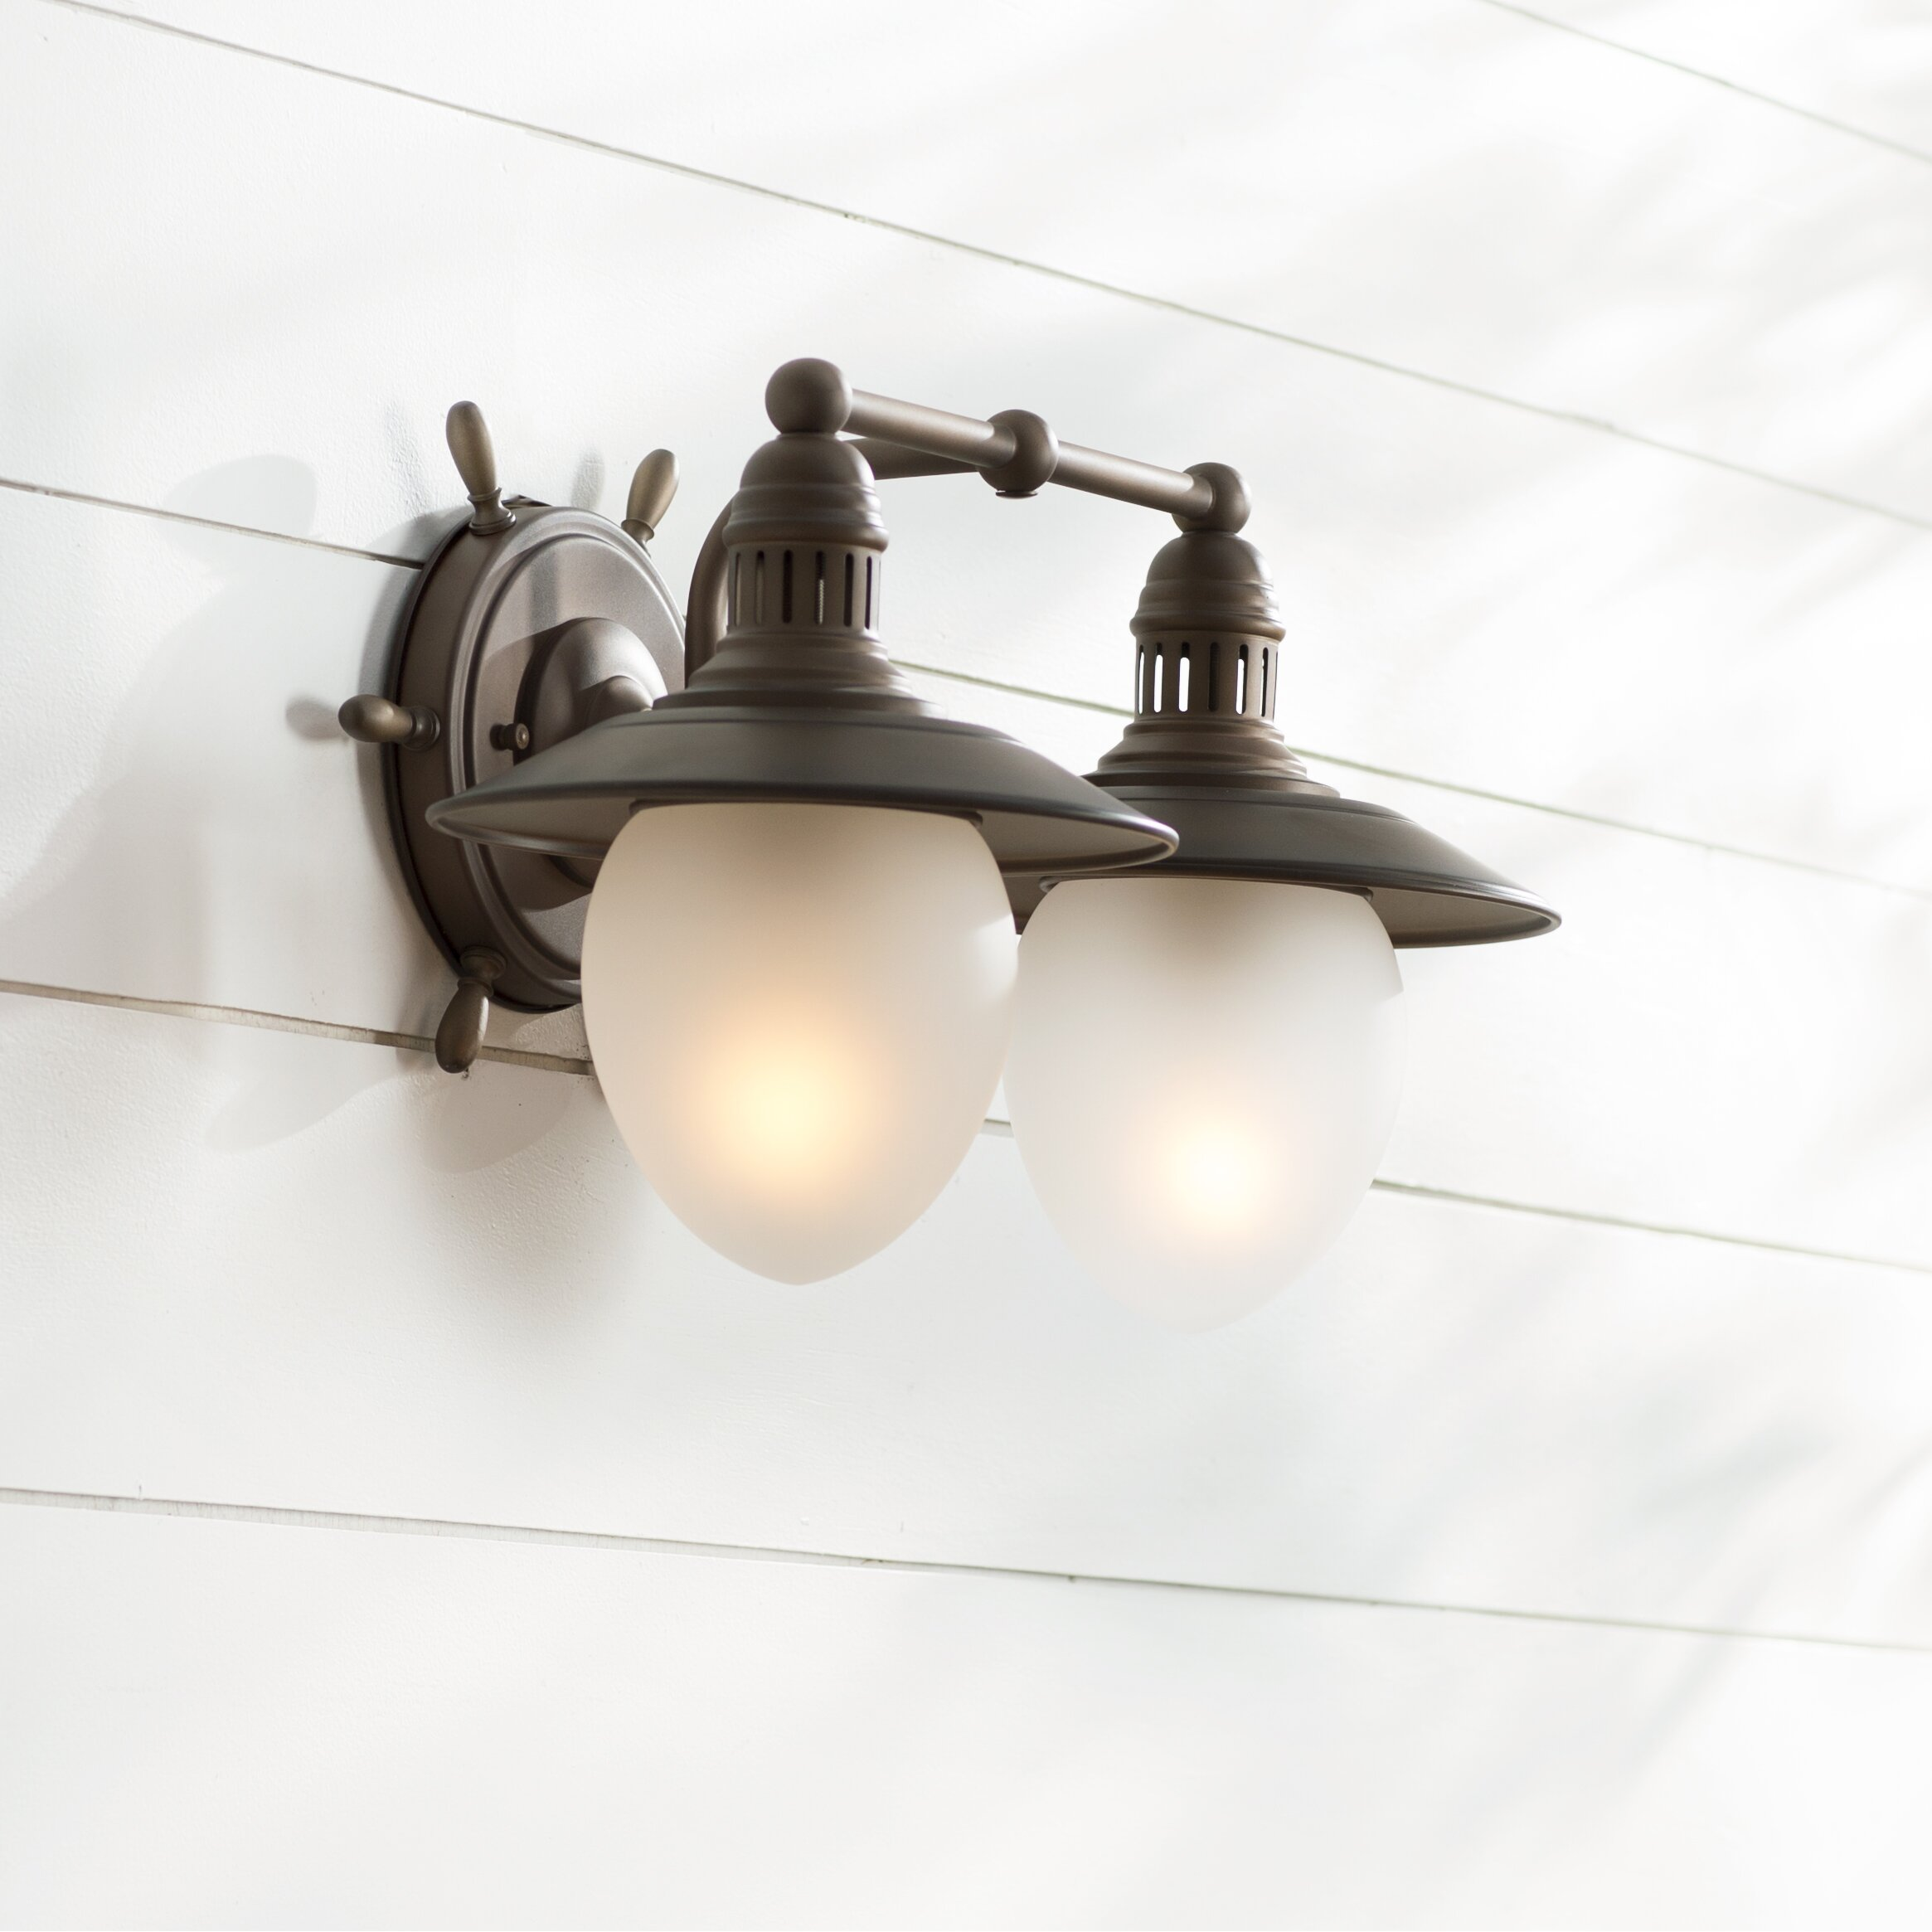 Vaxcel Nautical 2 Light Outdoor Barn Light & Reviews